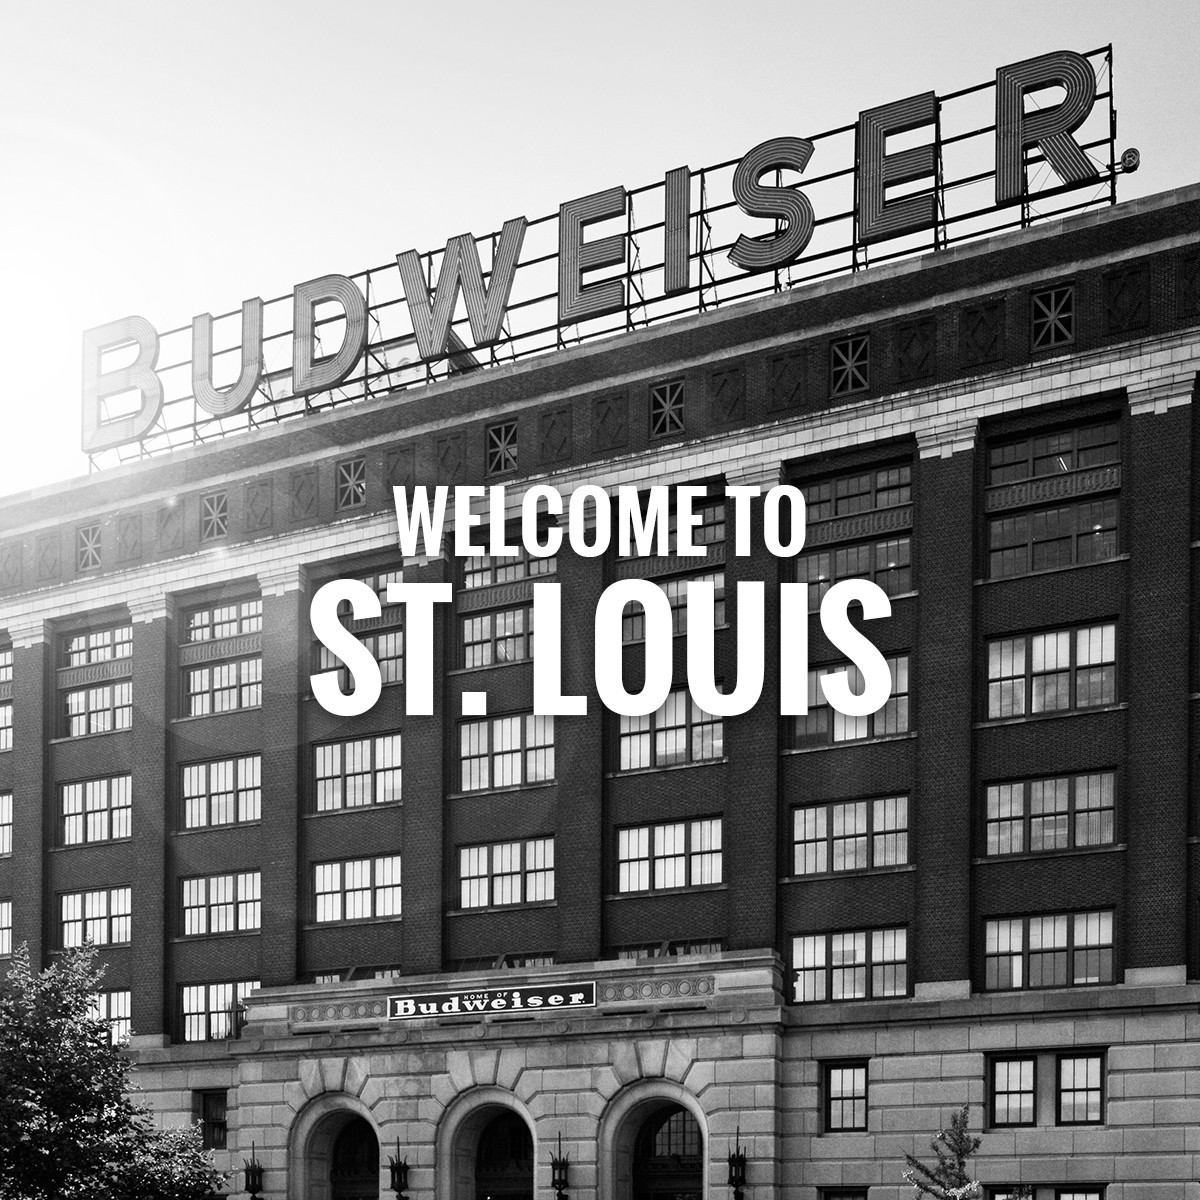 Family & STL Traditions Merge: Brewery Lights & Wild Lights